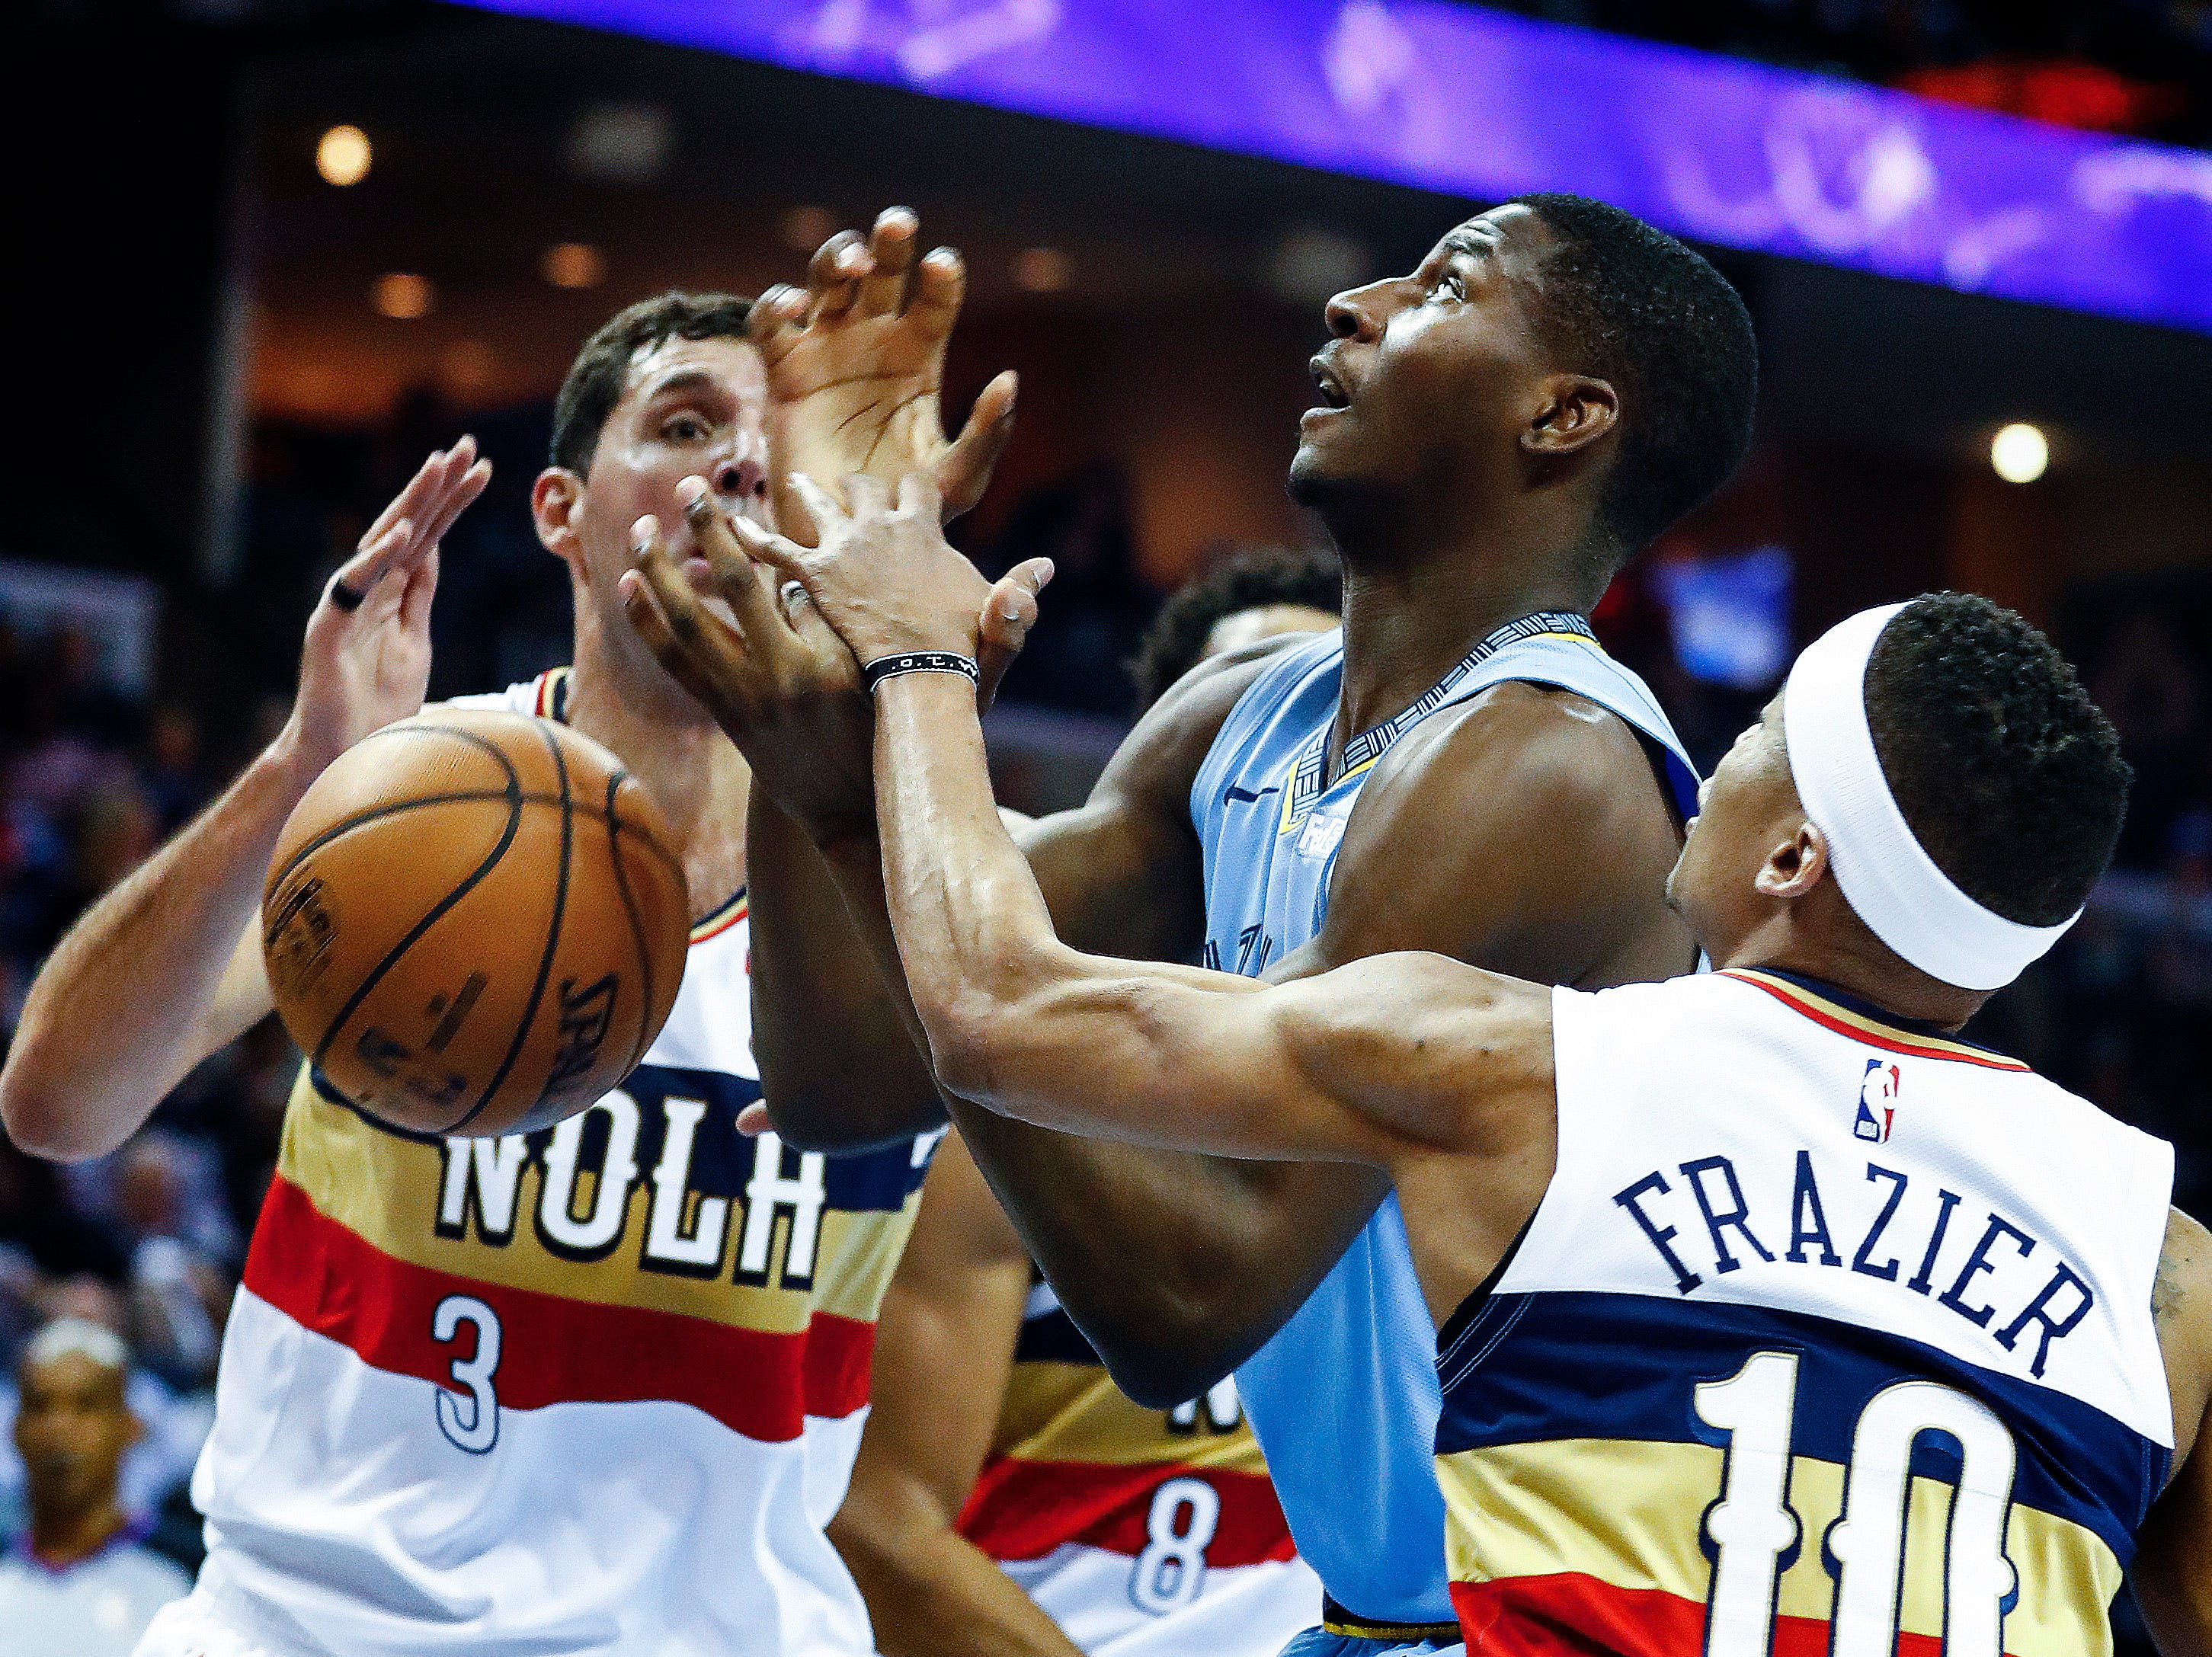 Memphis Grizzlies center Jaren Jackson Jr. (middle) has the ball stripped while guarded by New Orleans Pelicans defenders Nikola Mirotic (left) and Tim Frazier (right) during action at the FedExForum in Memphis, Tenn., Monday, January 21, 2019.